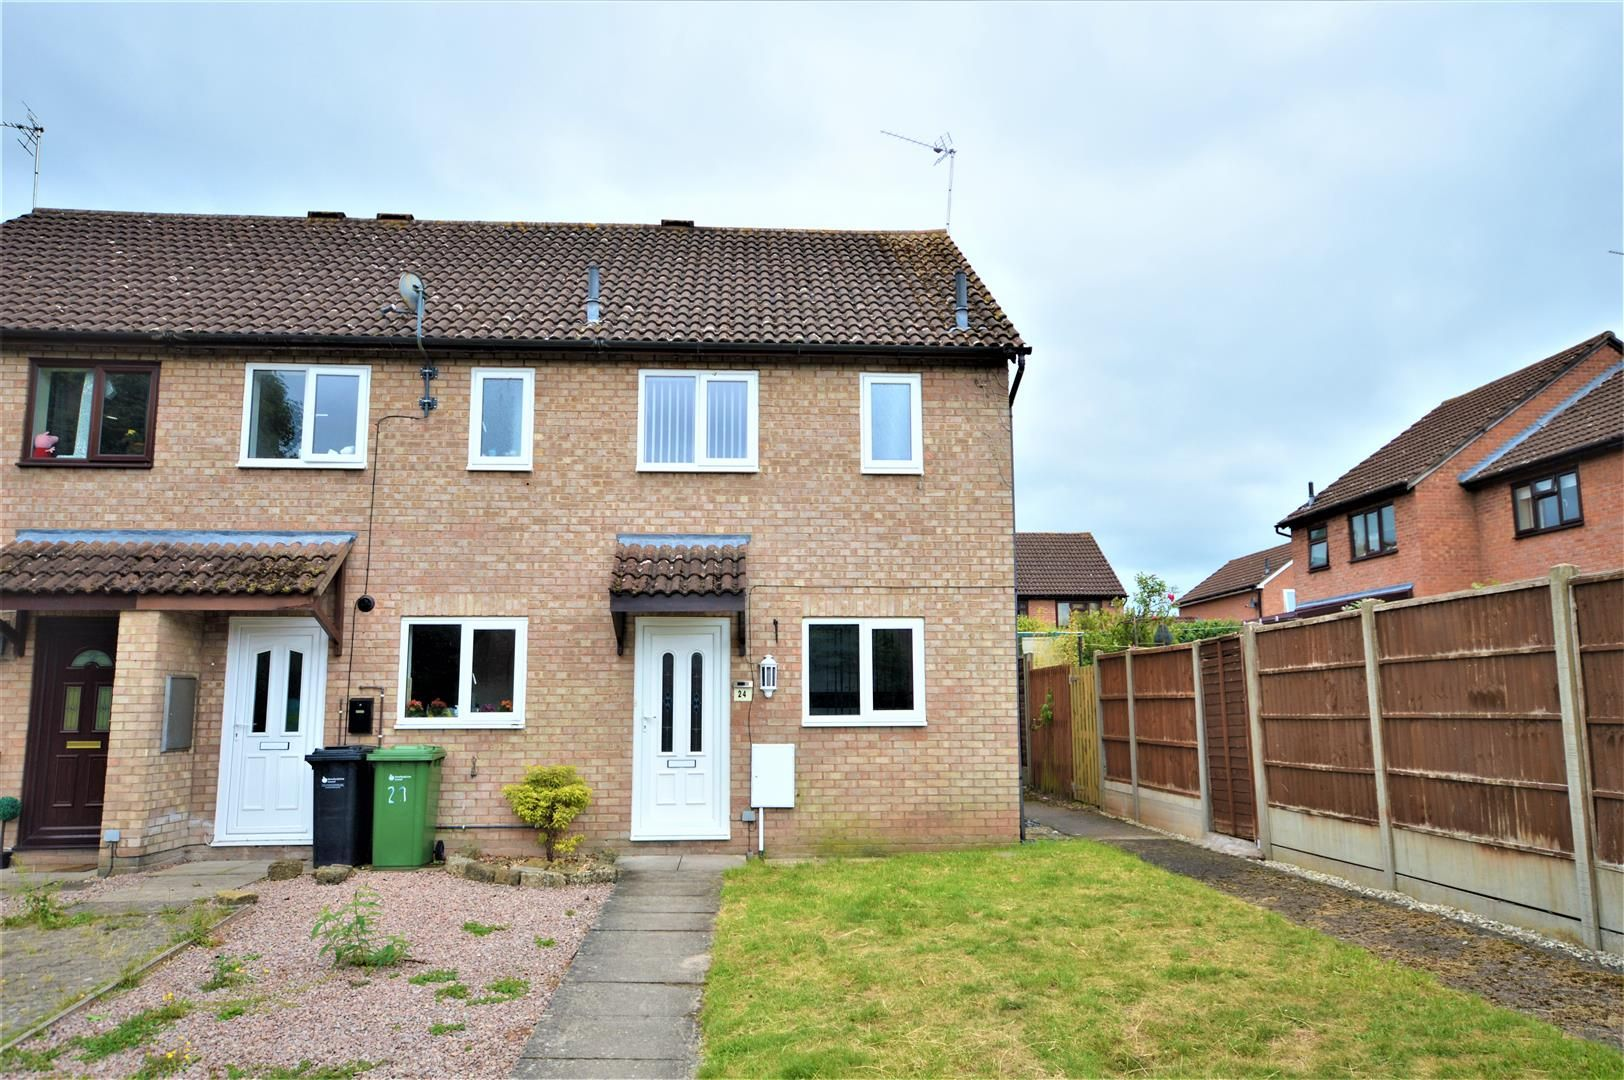 2 bed end-of-terrace for sale in Belmont, HR2